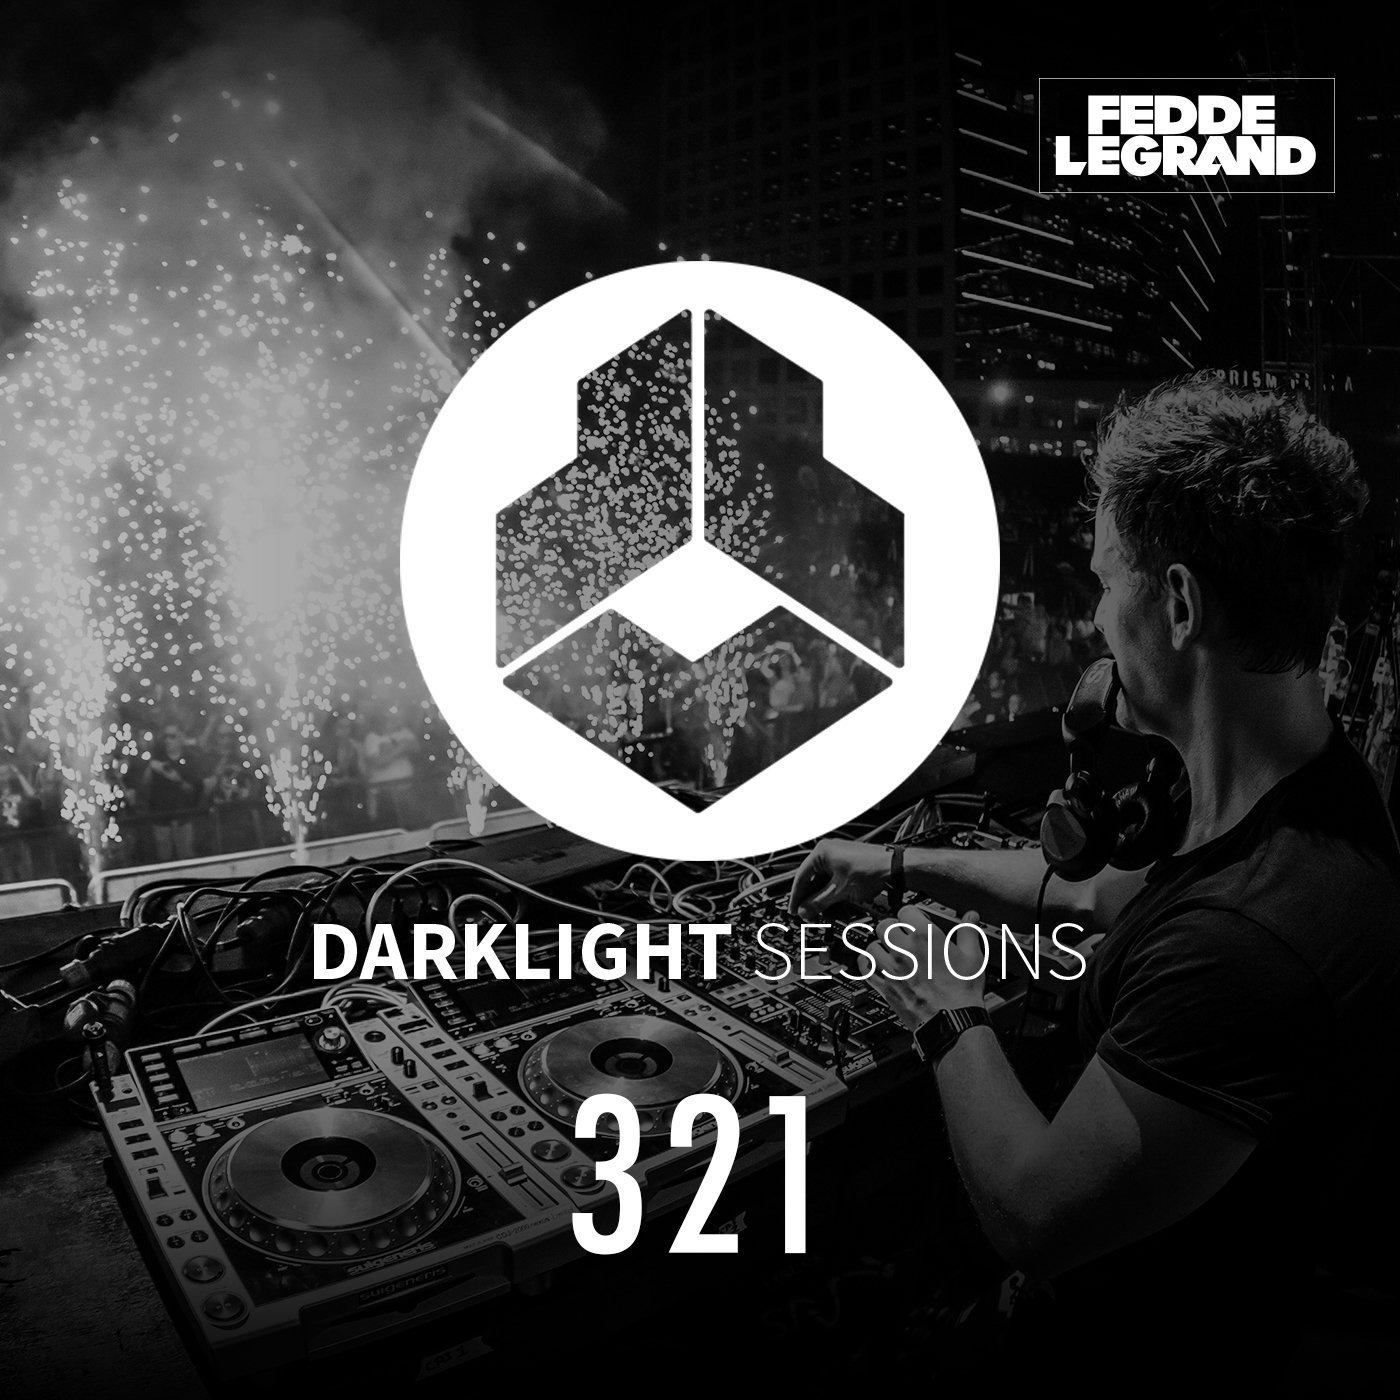 Darklight Sessions 321